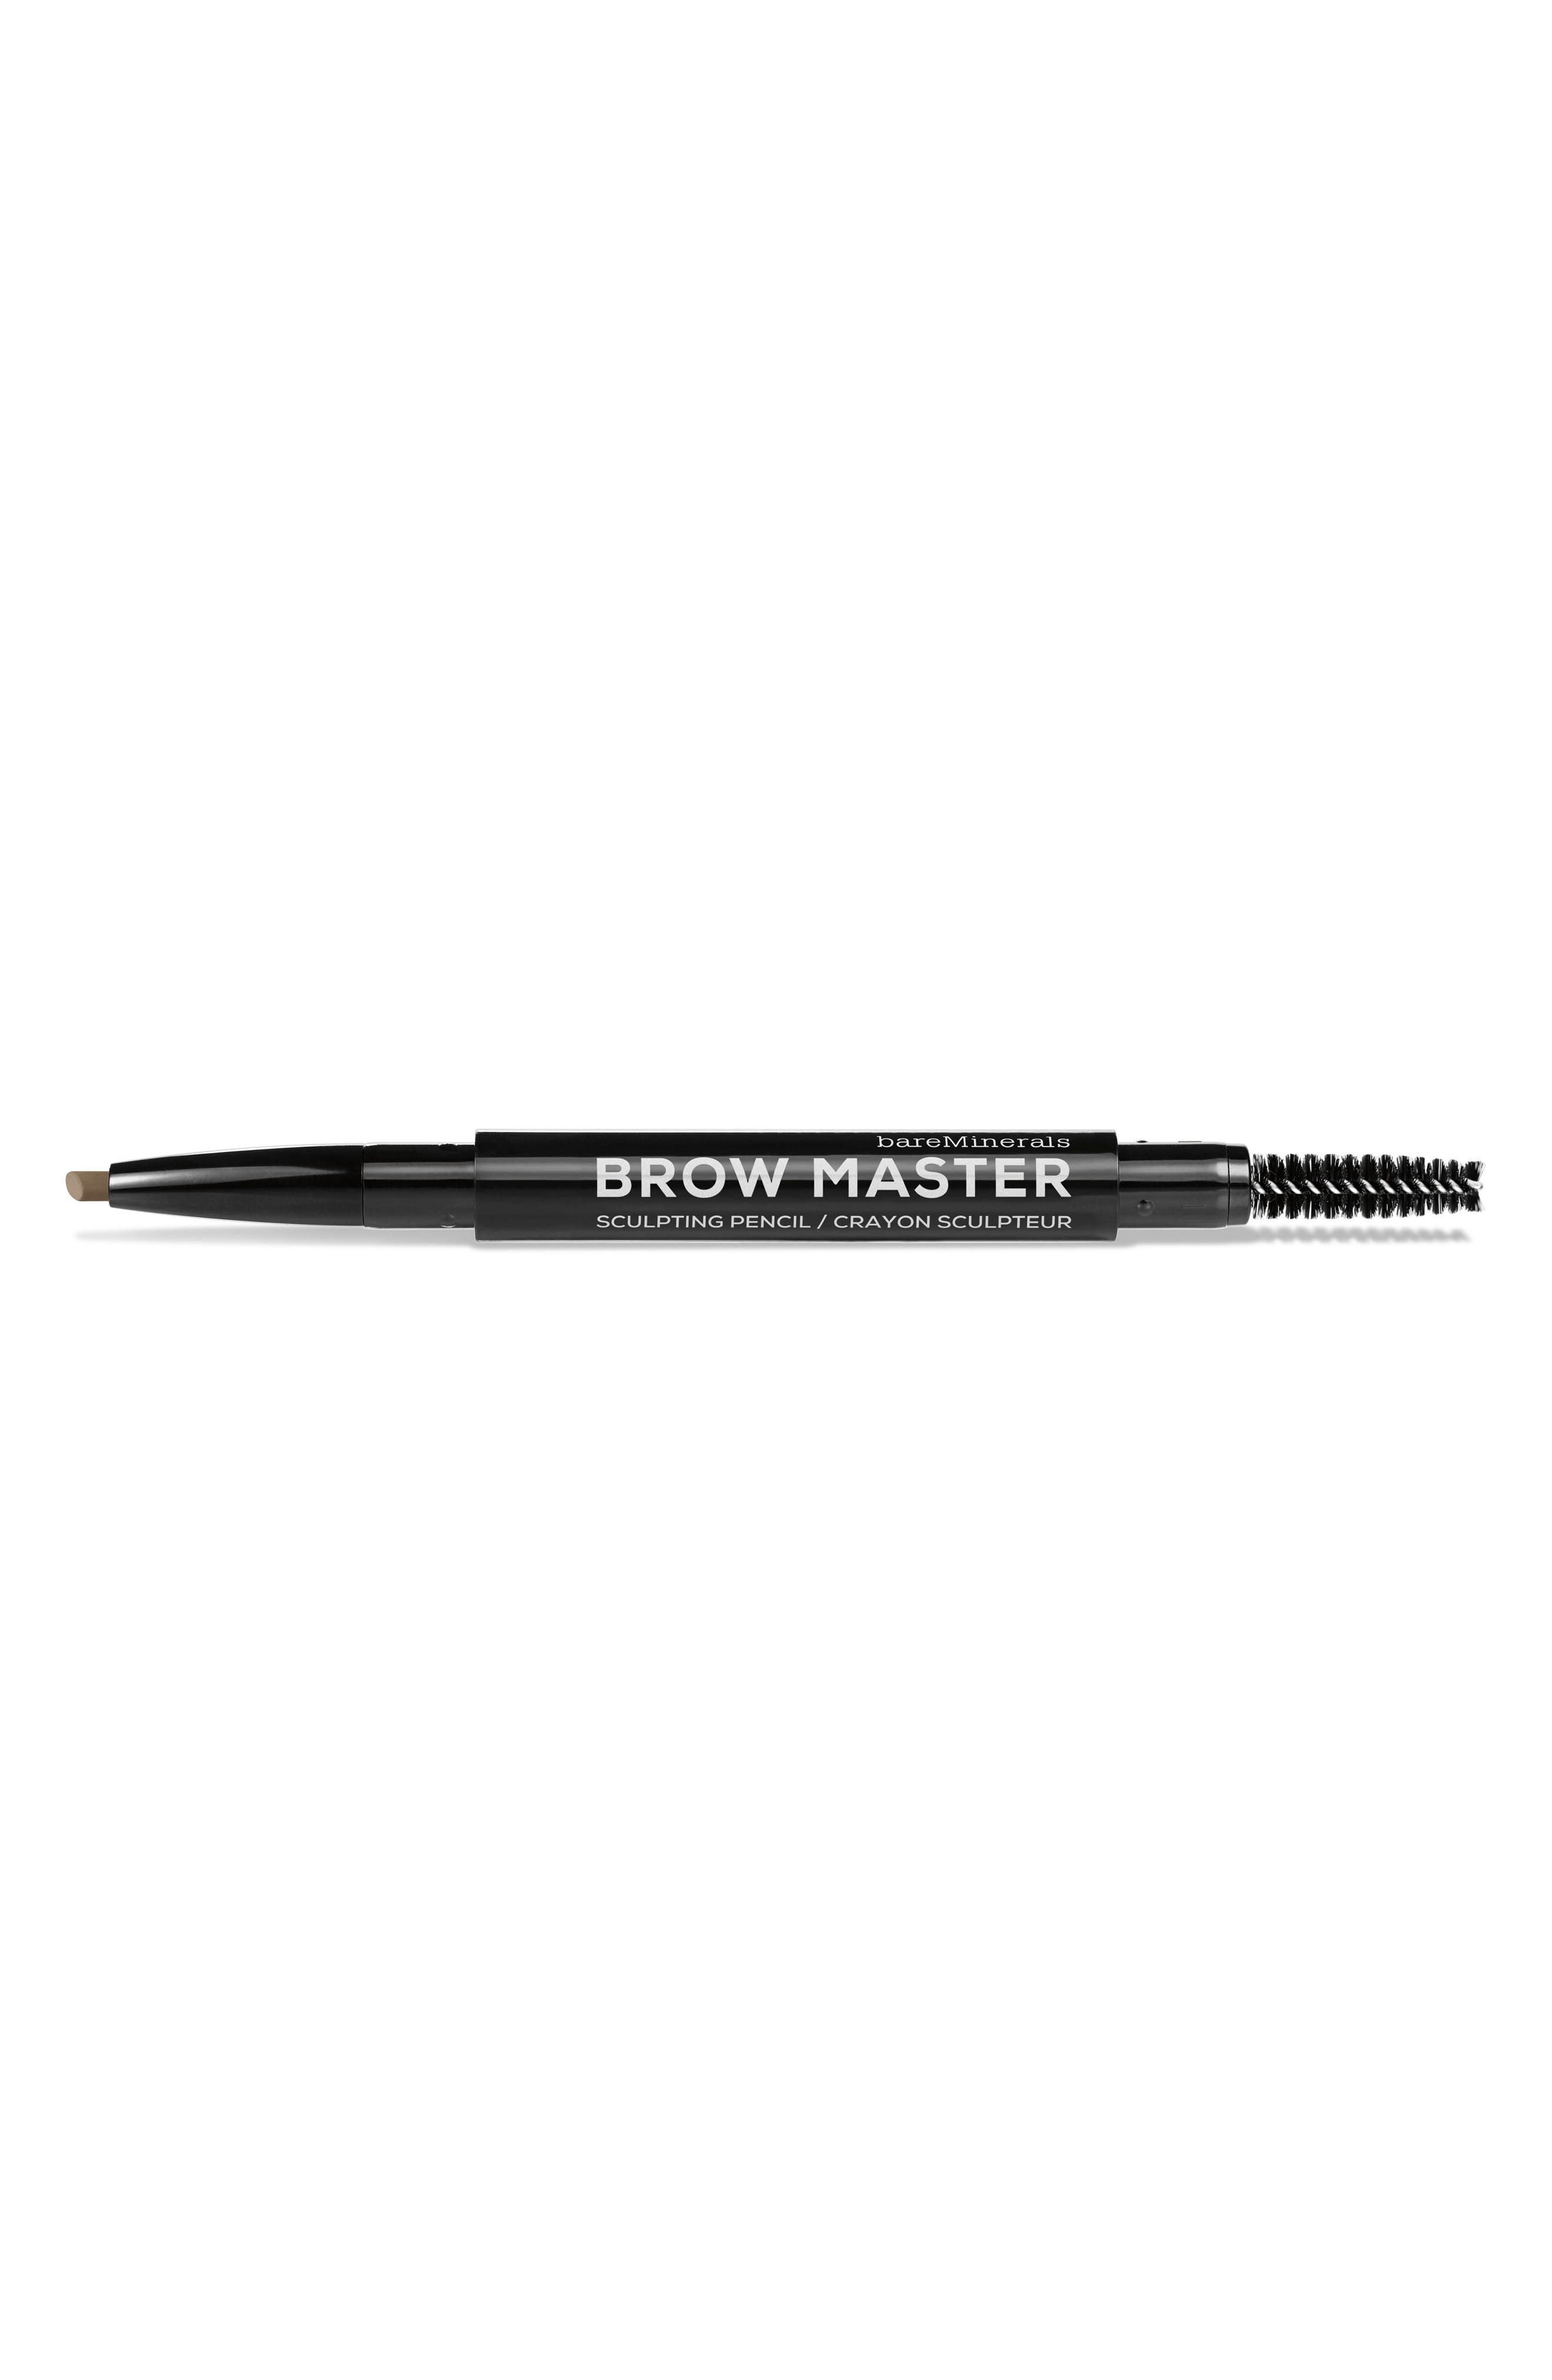 What it is: A brow pencil ideal for creating natural-looking brows, featuring a dual-ended, retractable design. What it does: With a foolproof oval tip on one and a spoolie on the other, it\\\'s never been easier to shape, fill and define your brows for a natural look. Mineral pigments provide buildable color designed to match your hair. Its smooth-glide formula is water- and smudge-resistant so your brows won\\\'t budge throughout the day. Use the